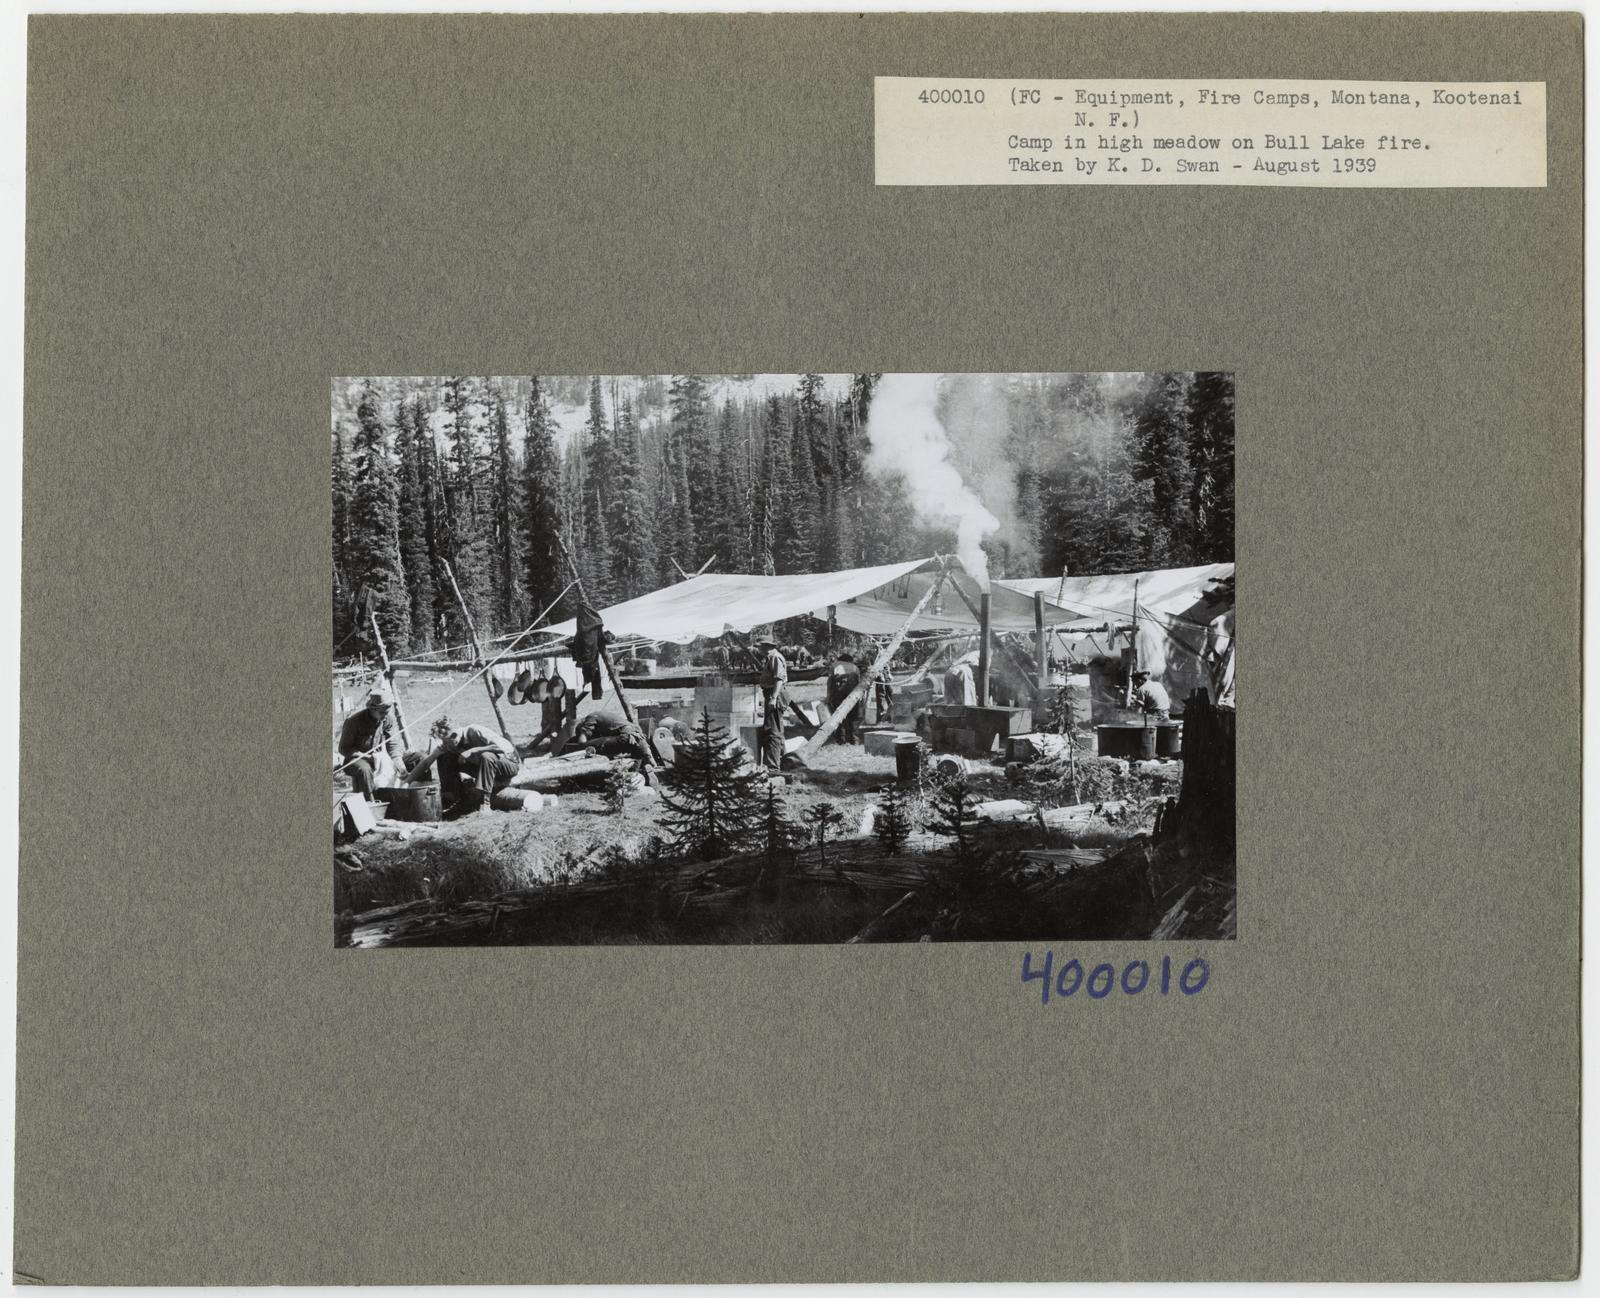 Forest Fire Camps - Montana